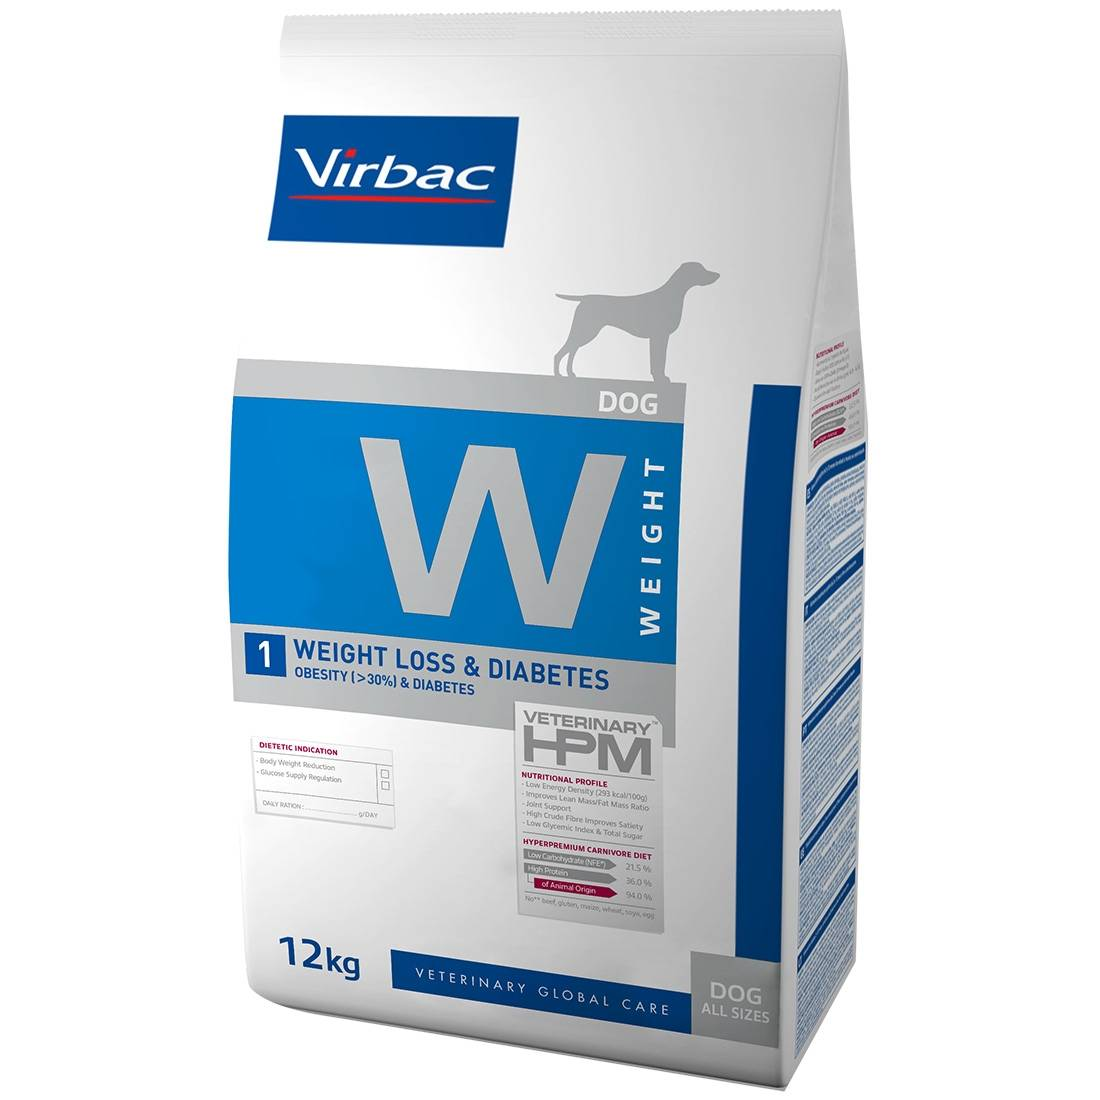 Virbac Veterinary HPM Weight Loss & Diabetes Dog Contenance : 12 kg